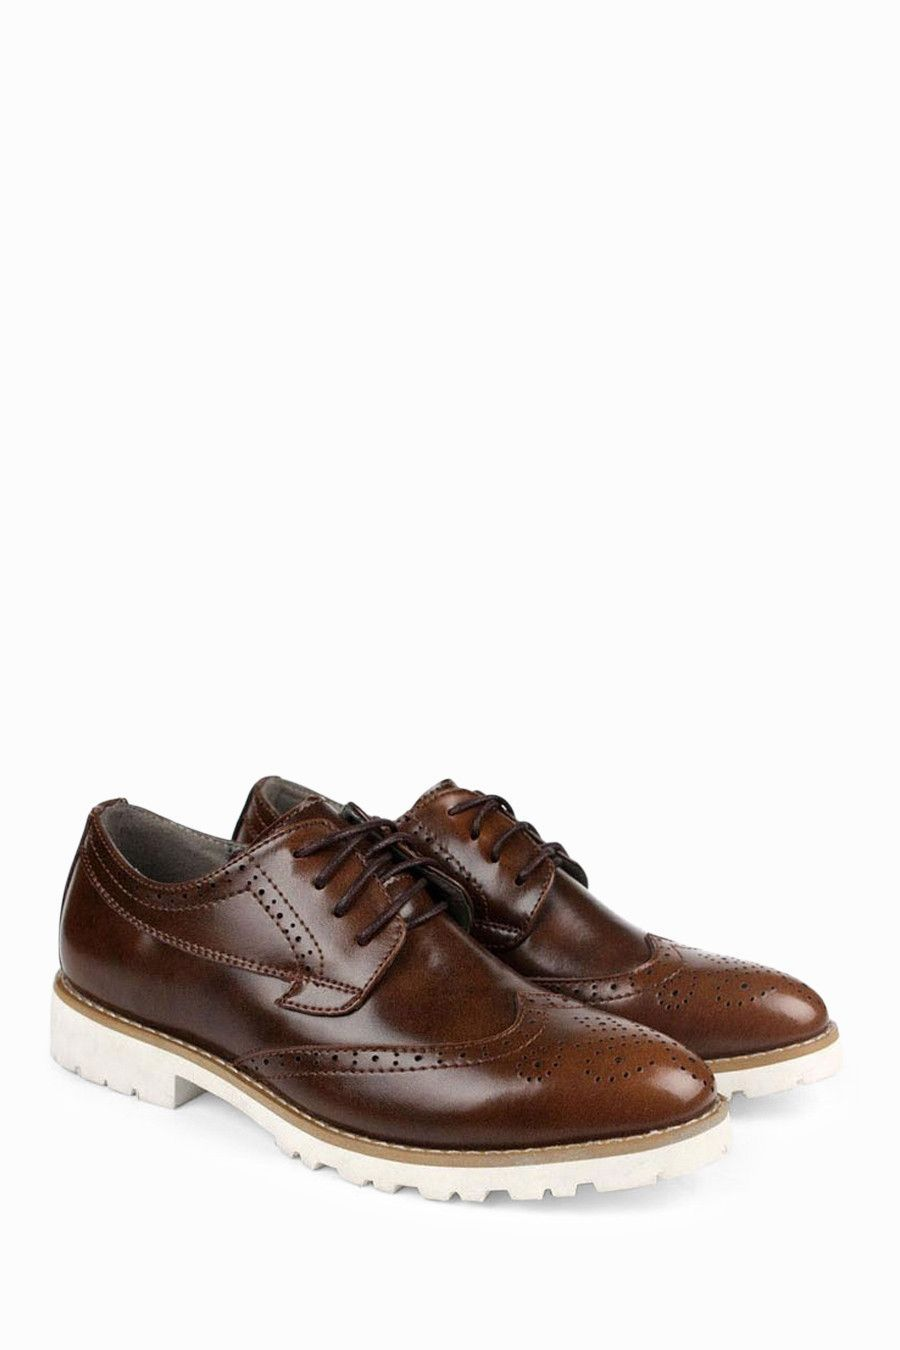 Patent leather dress shoes in dark brown leather dress shoes